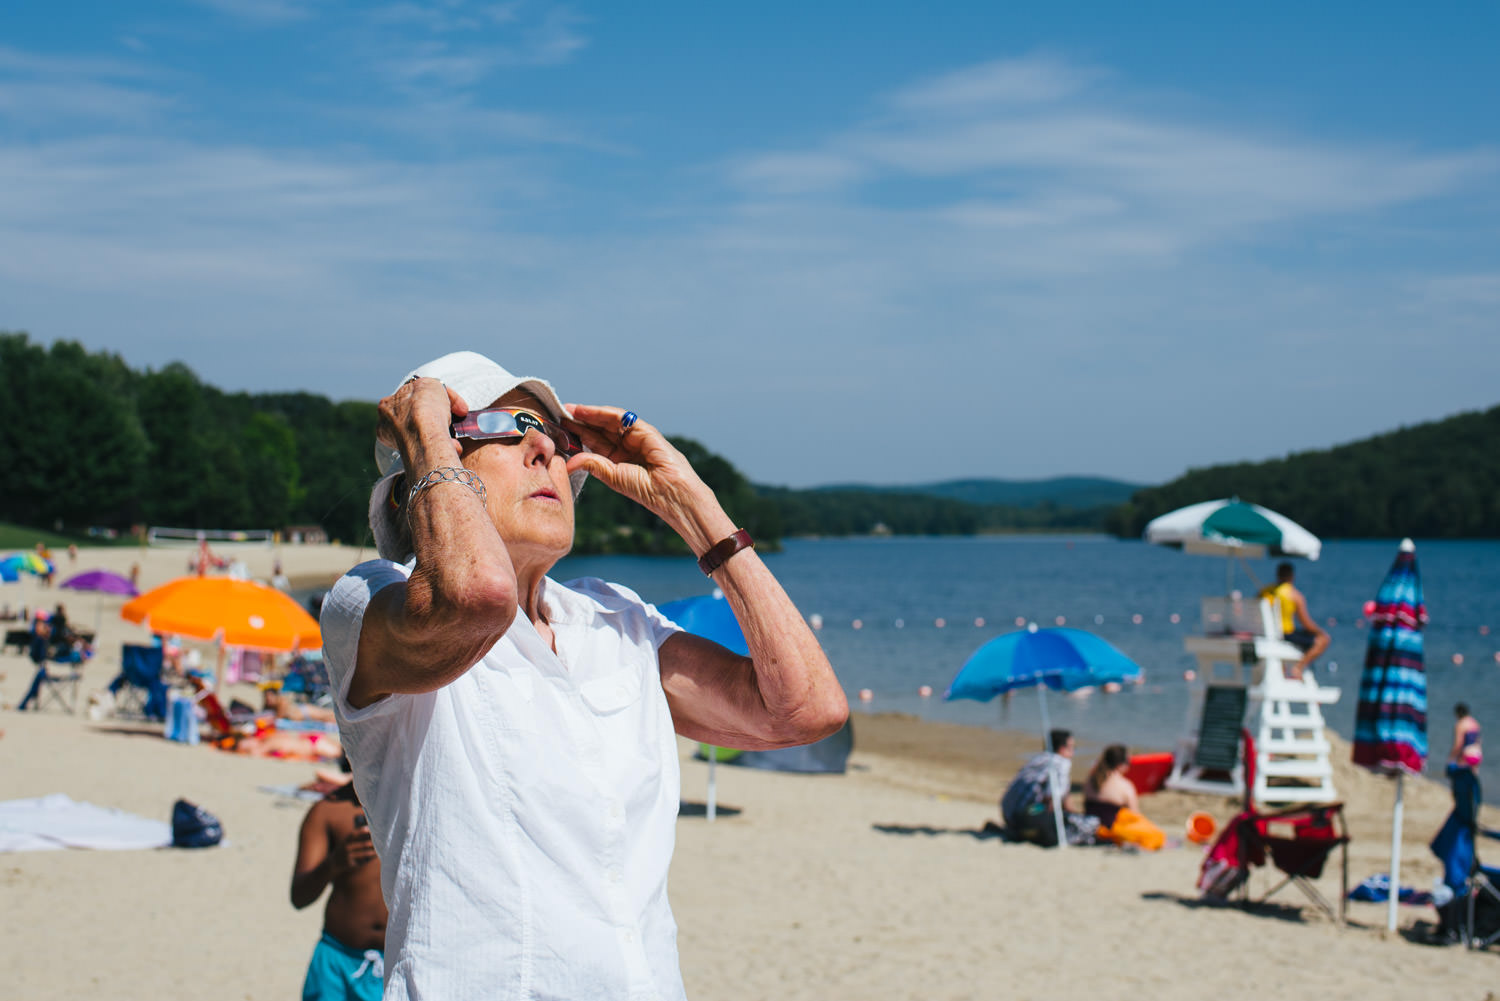 A lady looks at the eclipse through solar glasses.